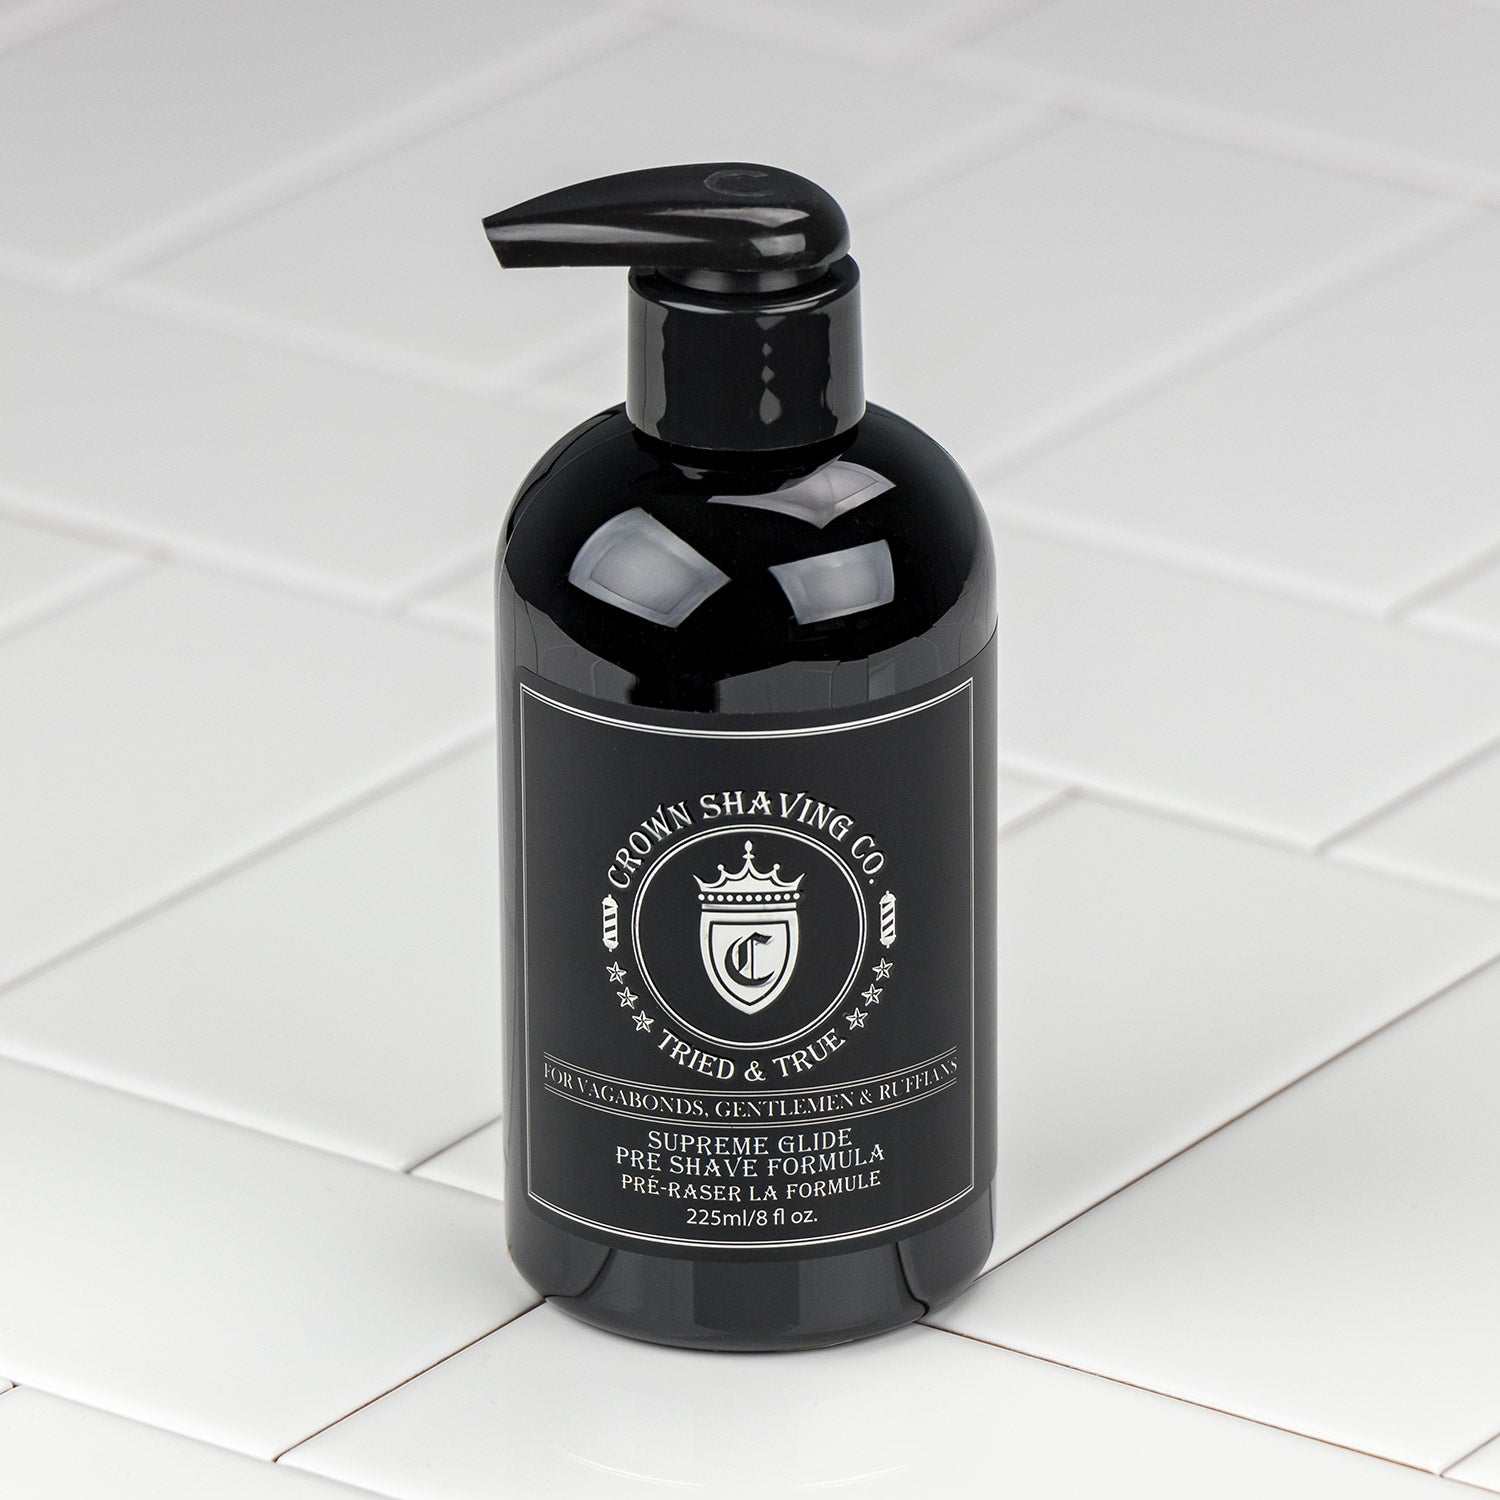 Crown Shaving Co. Preshave 225ml